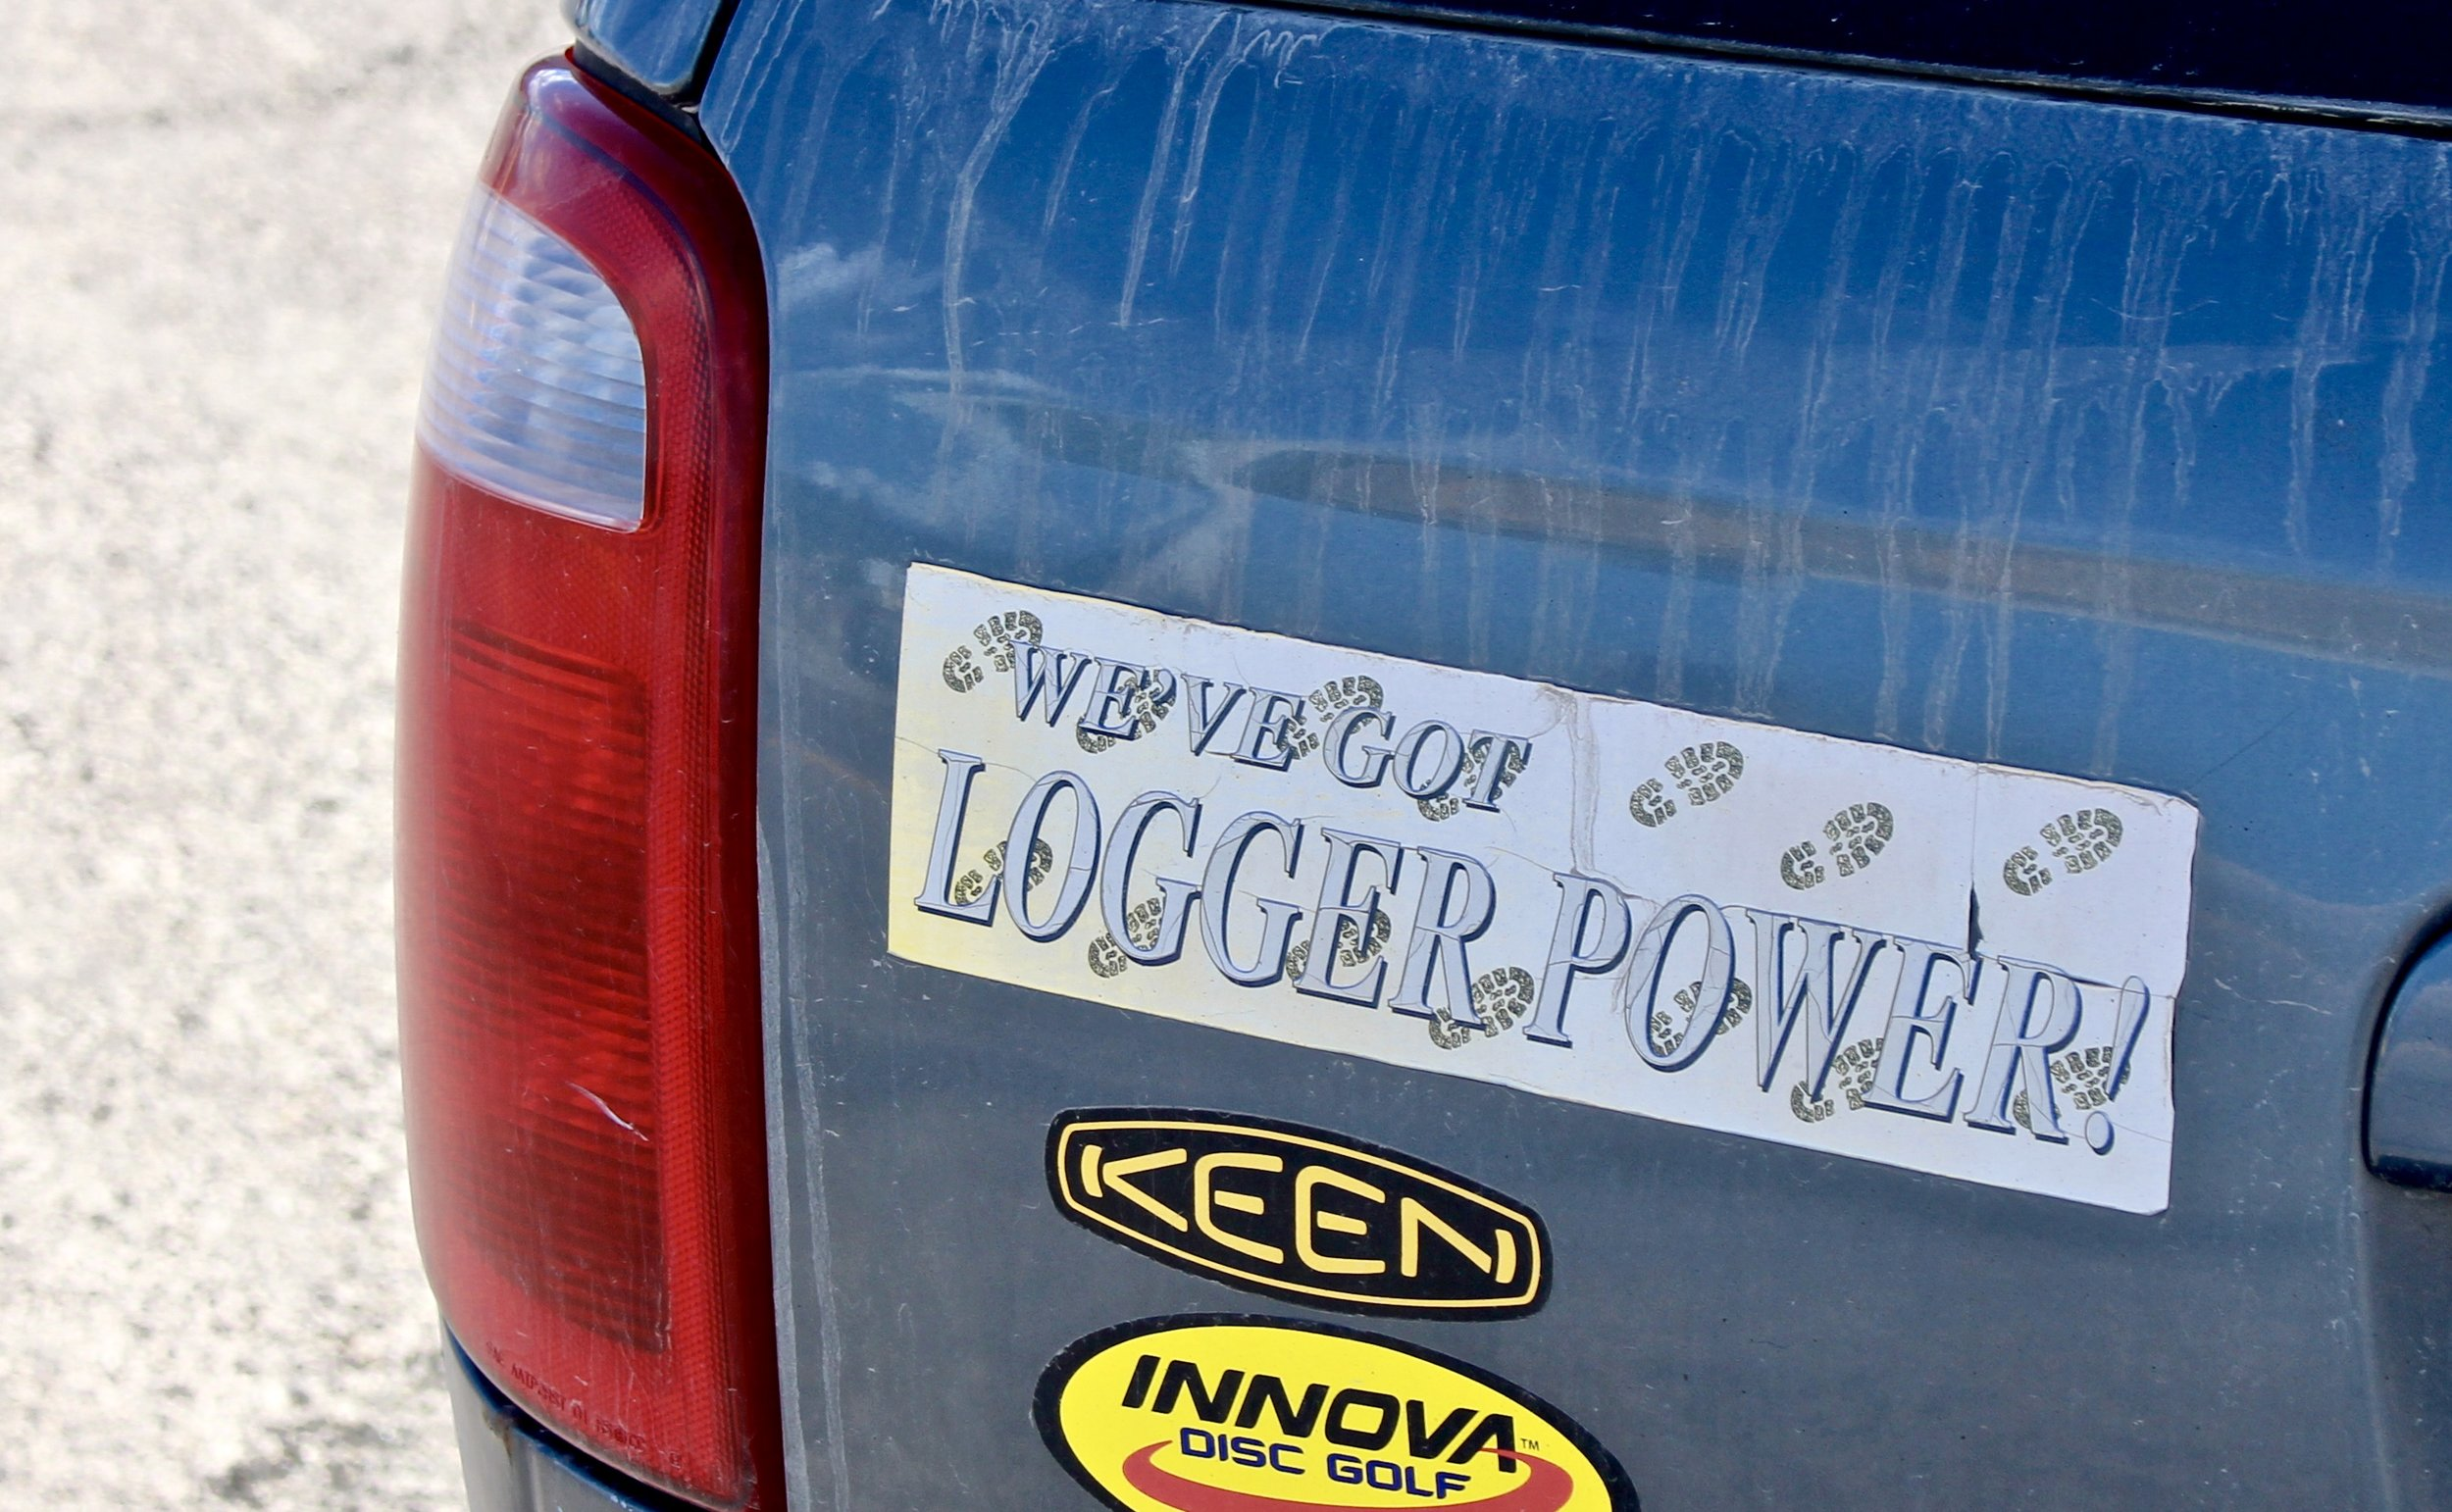 Bumper stickers brag of the towns old strength